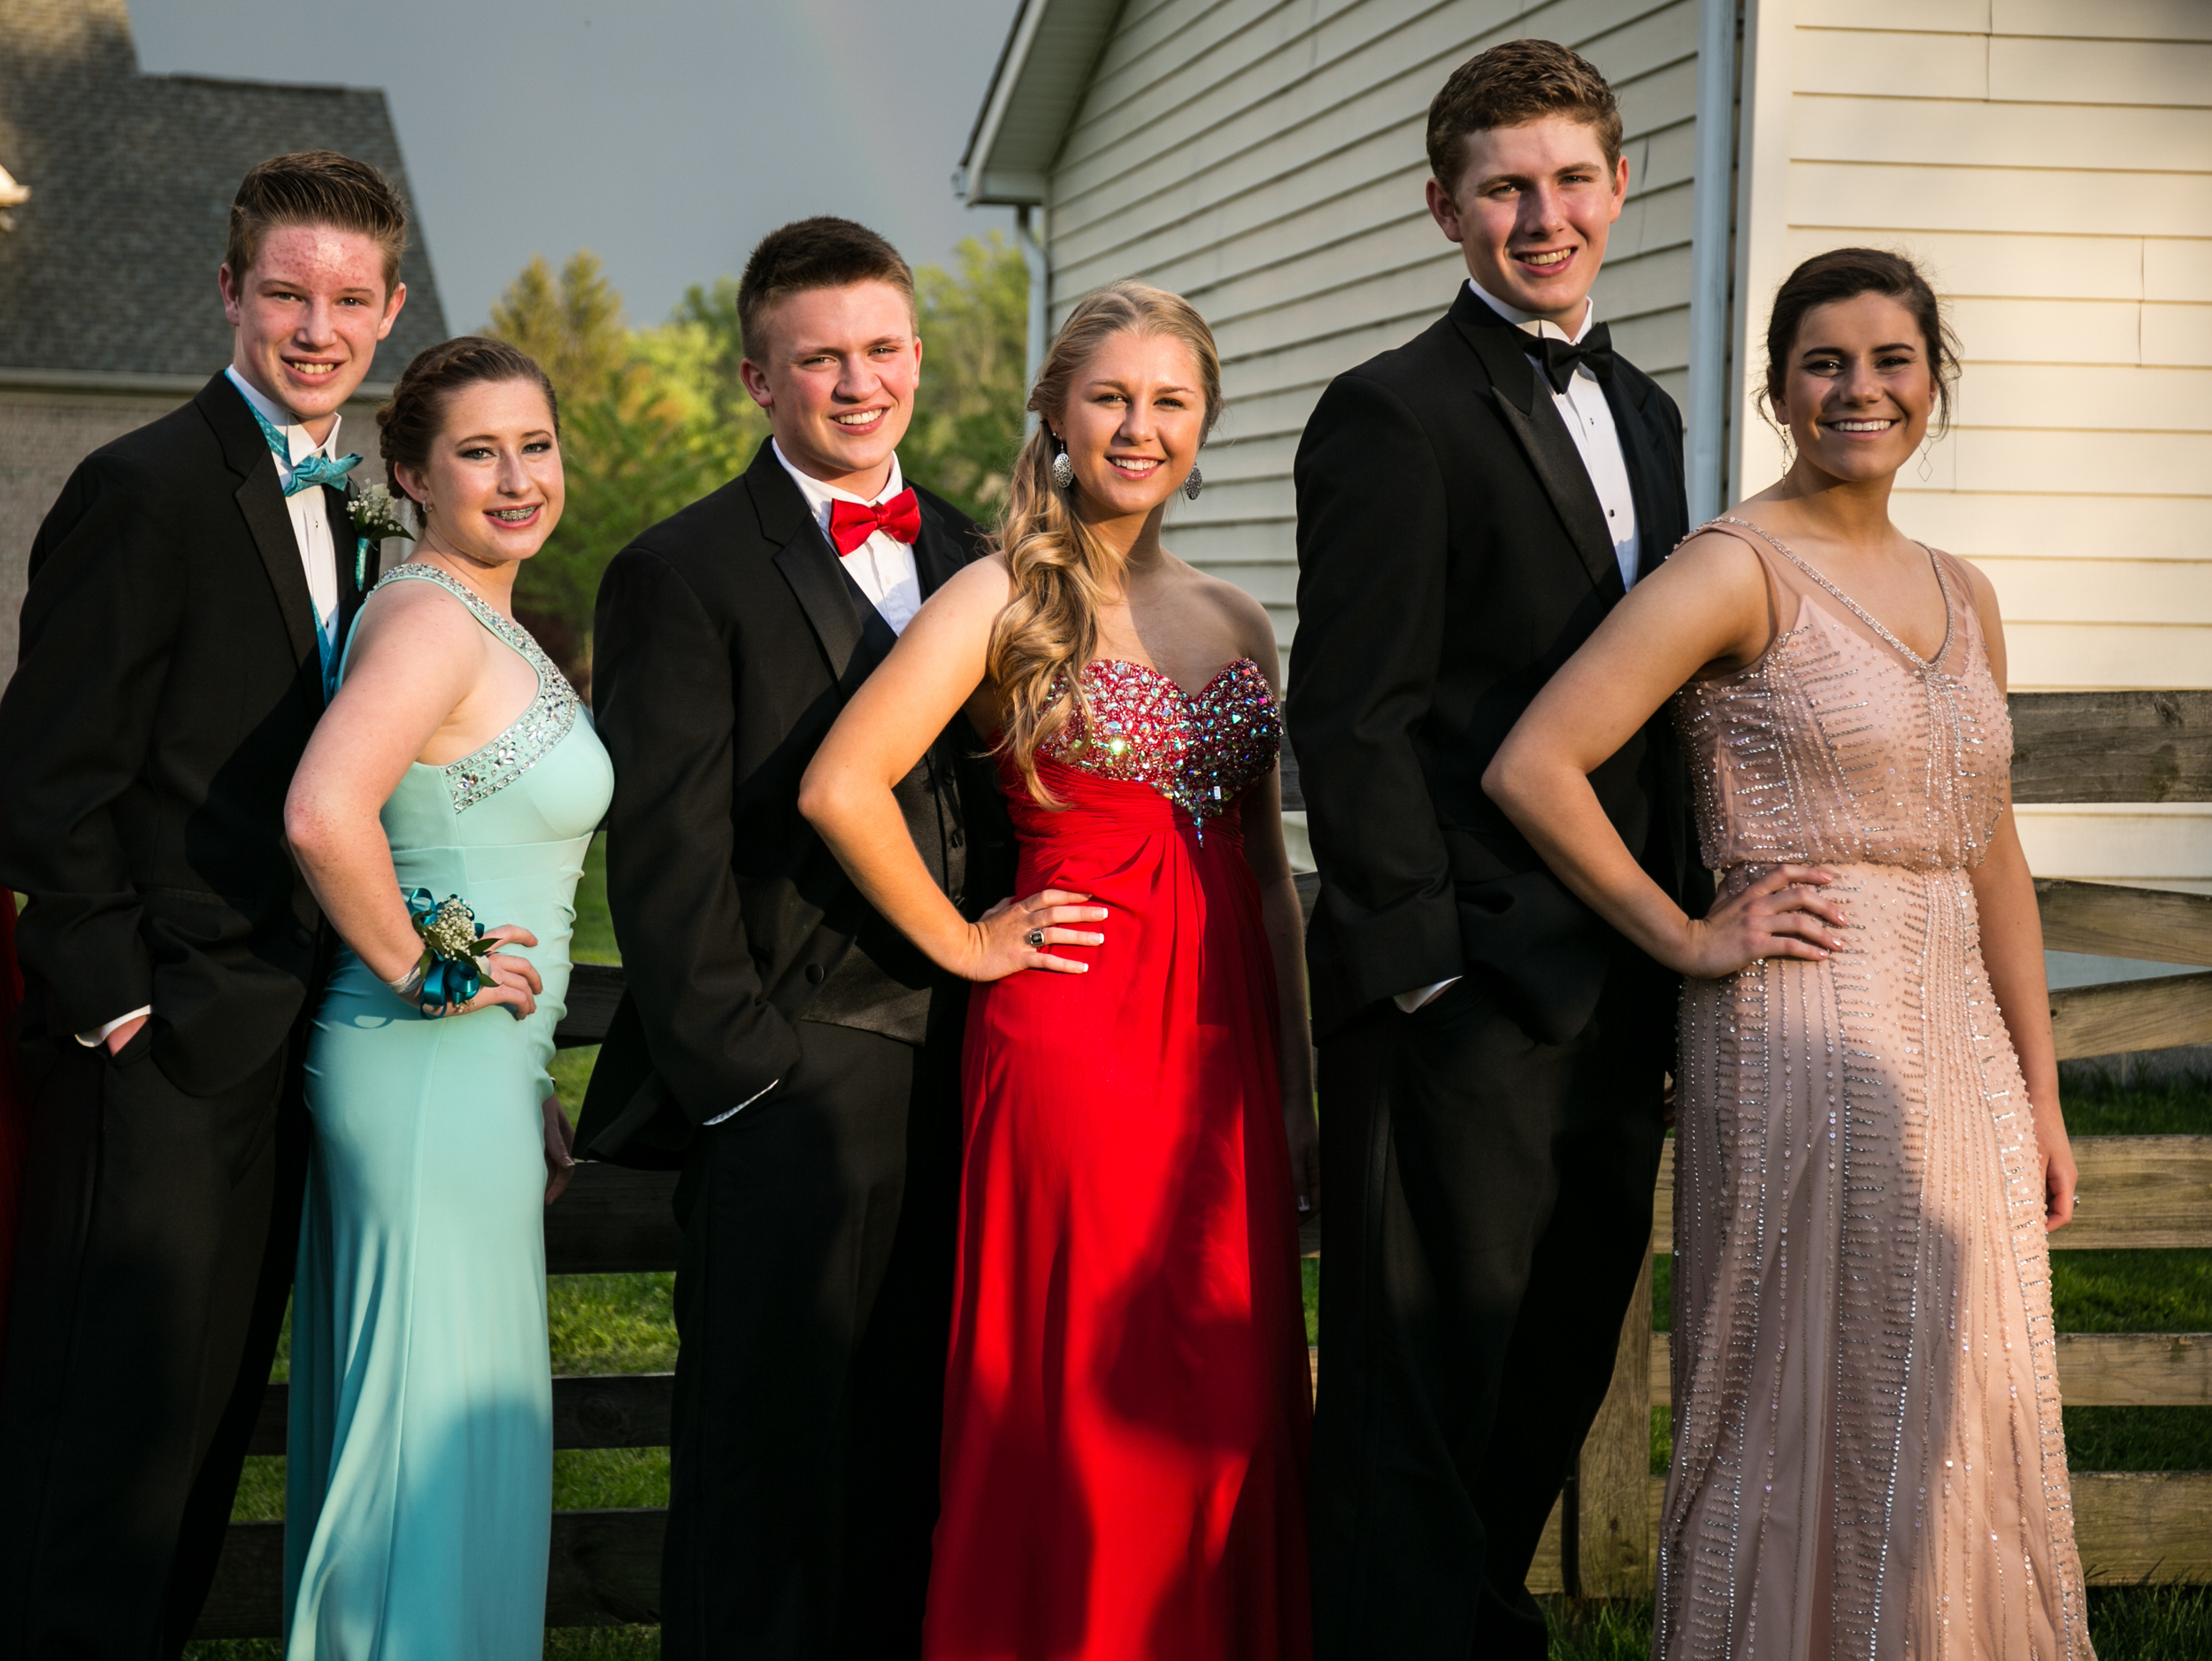 Mount-De-Sales-Pre-Prom-May-2014-46.jpg